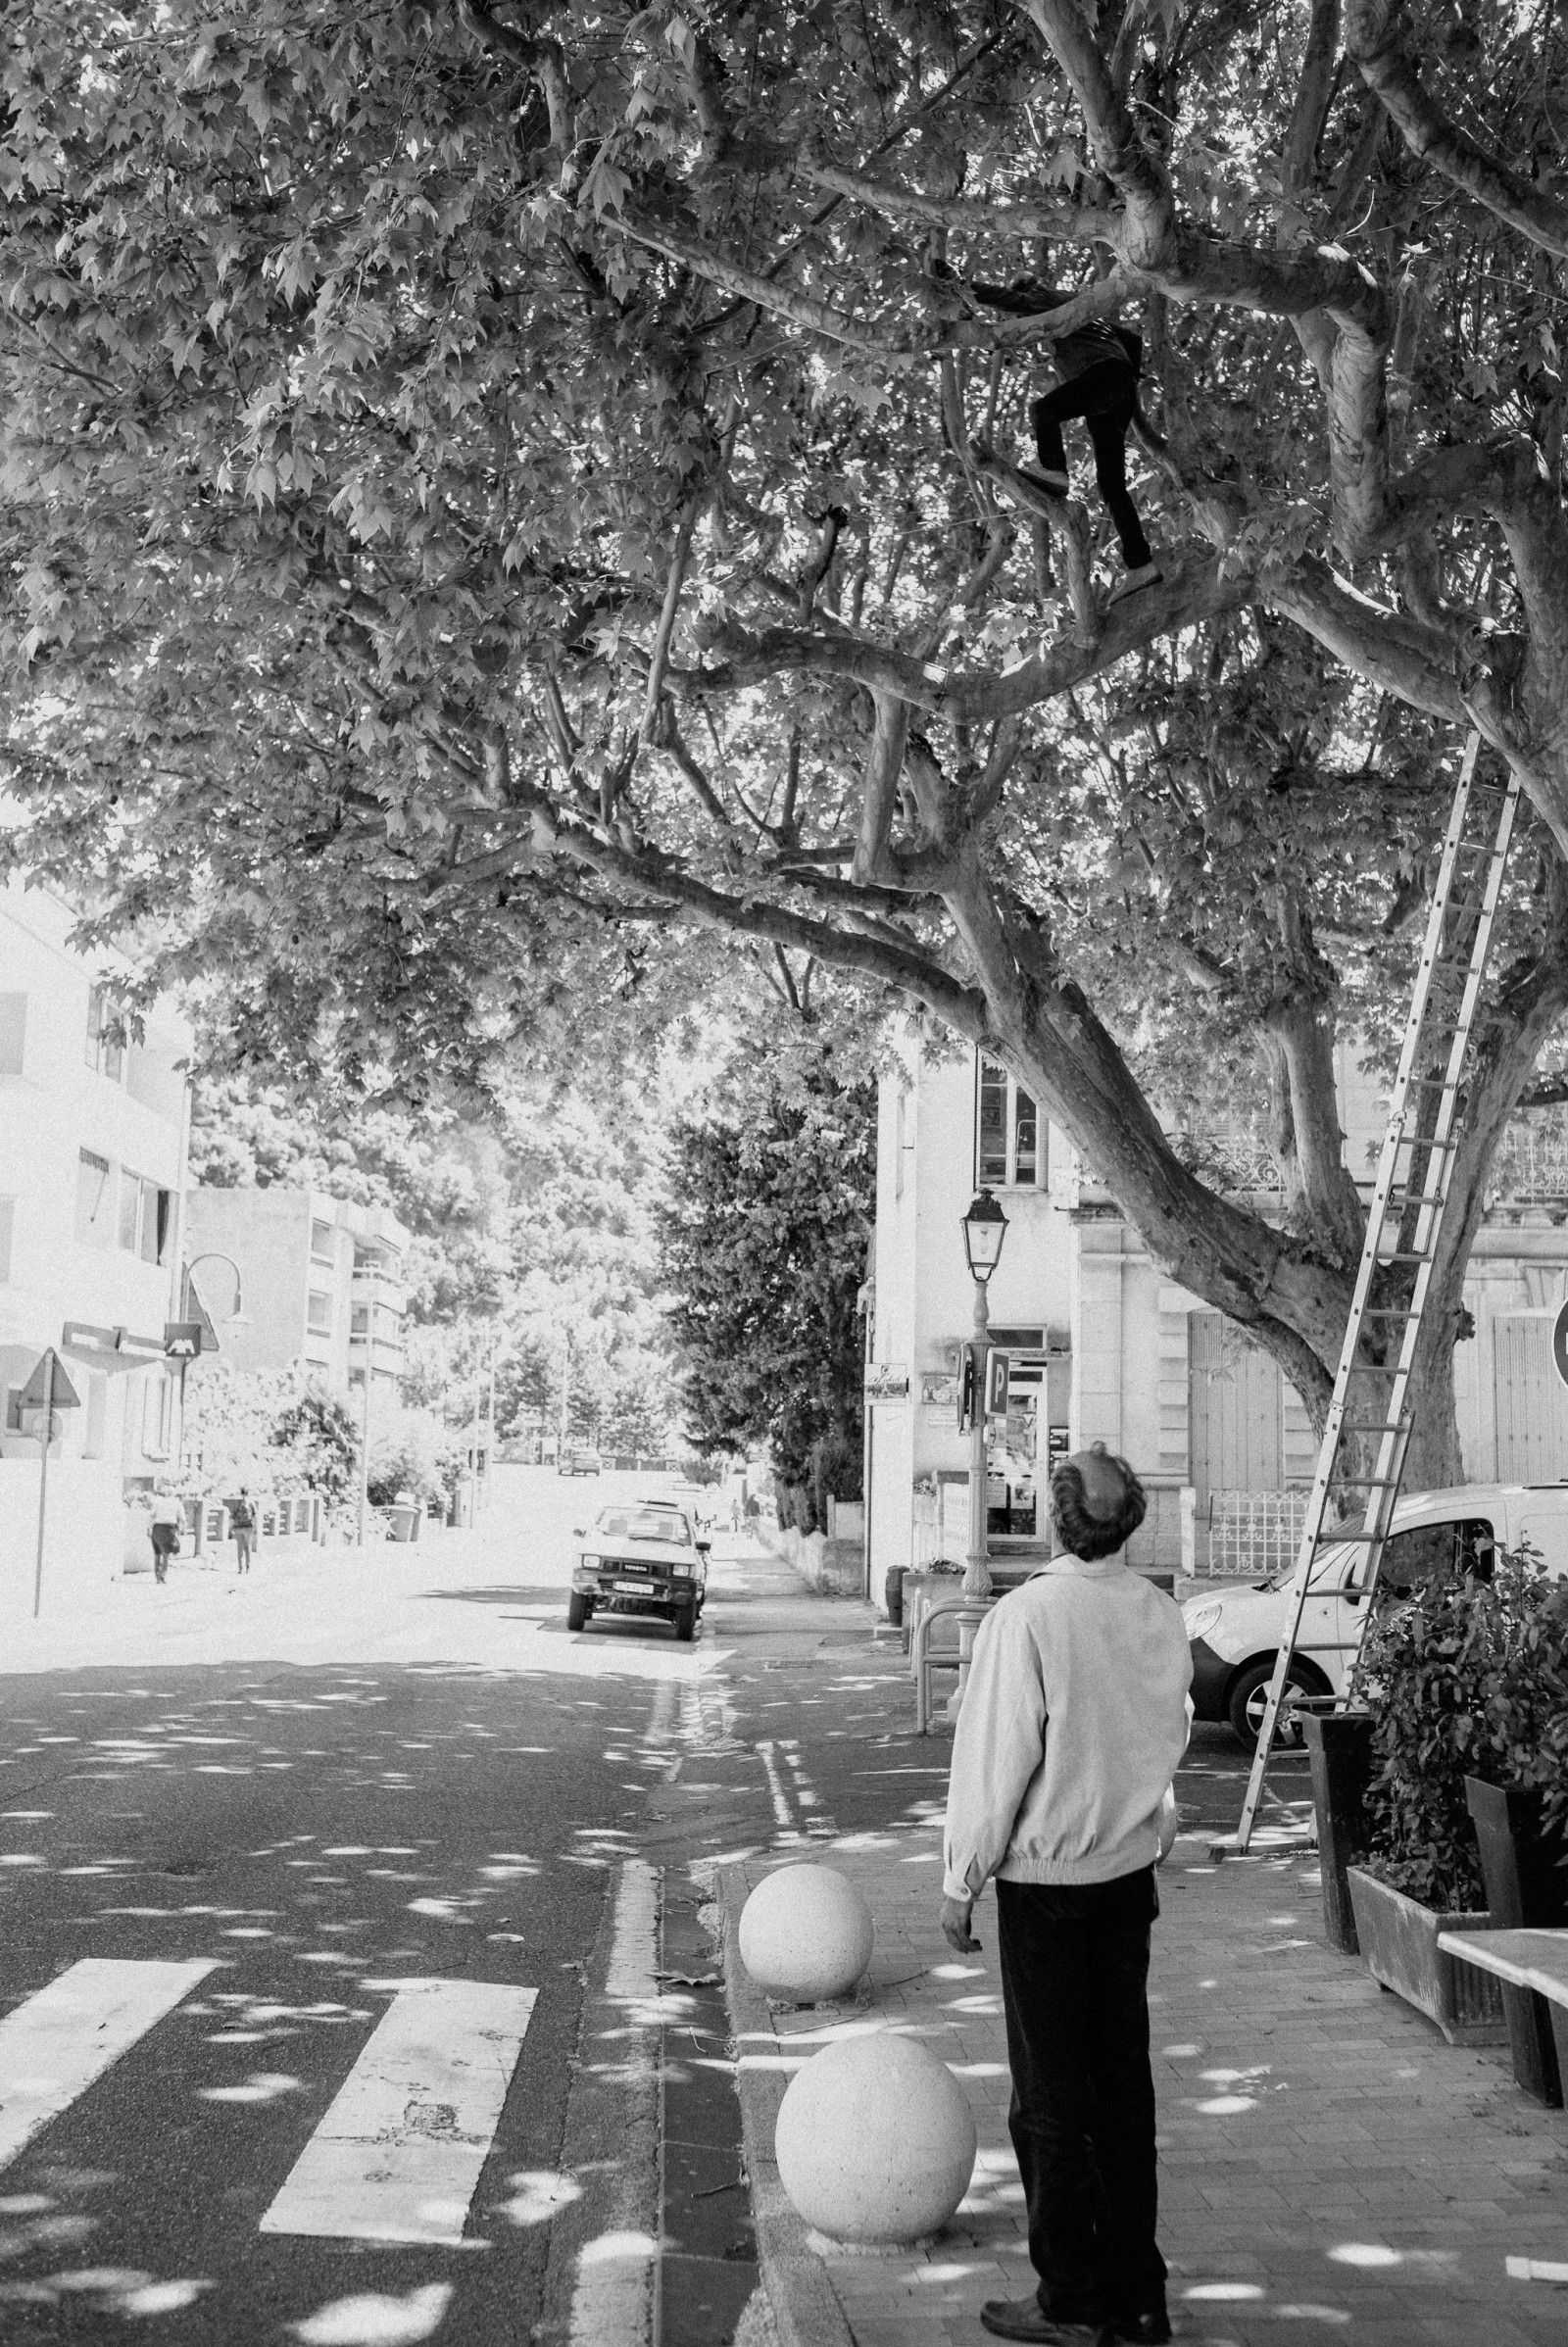 man_in_tree_france_m240_leica_summicron_35mm_jipvankuijk